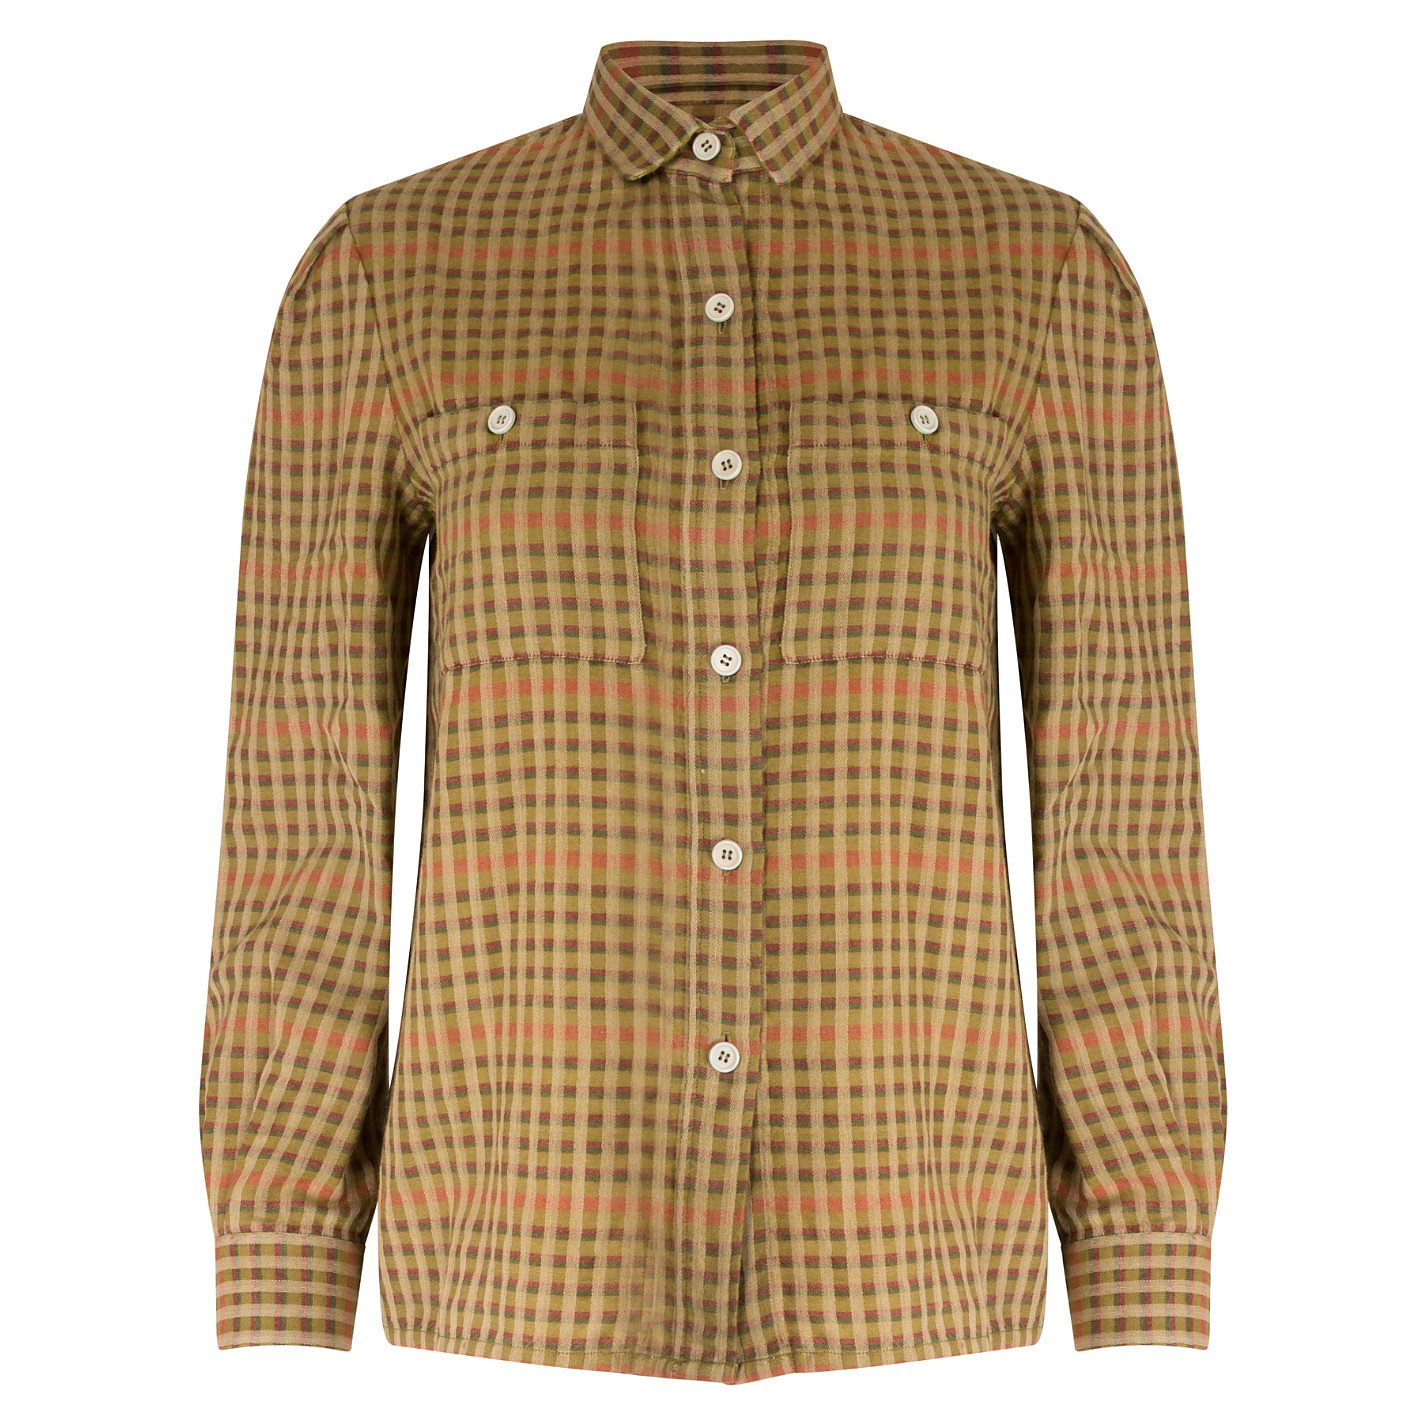 Dior Check Shirt With Shoulder Pads